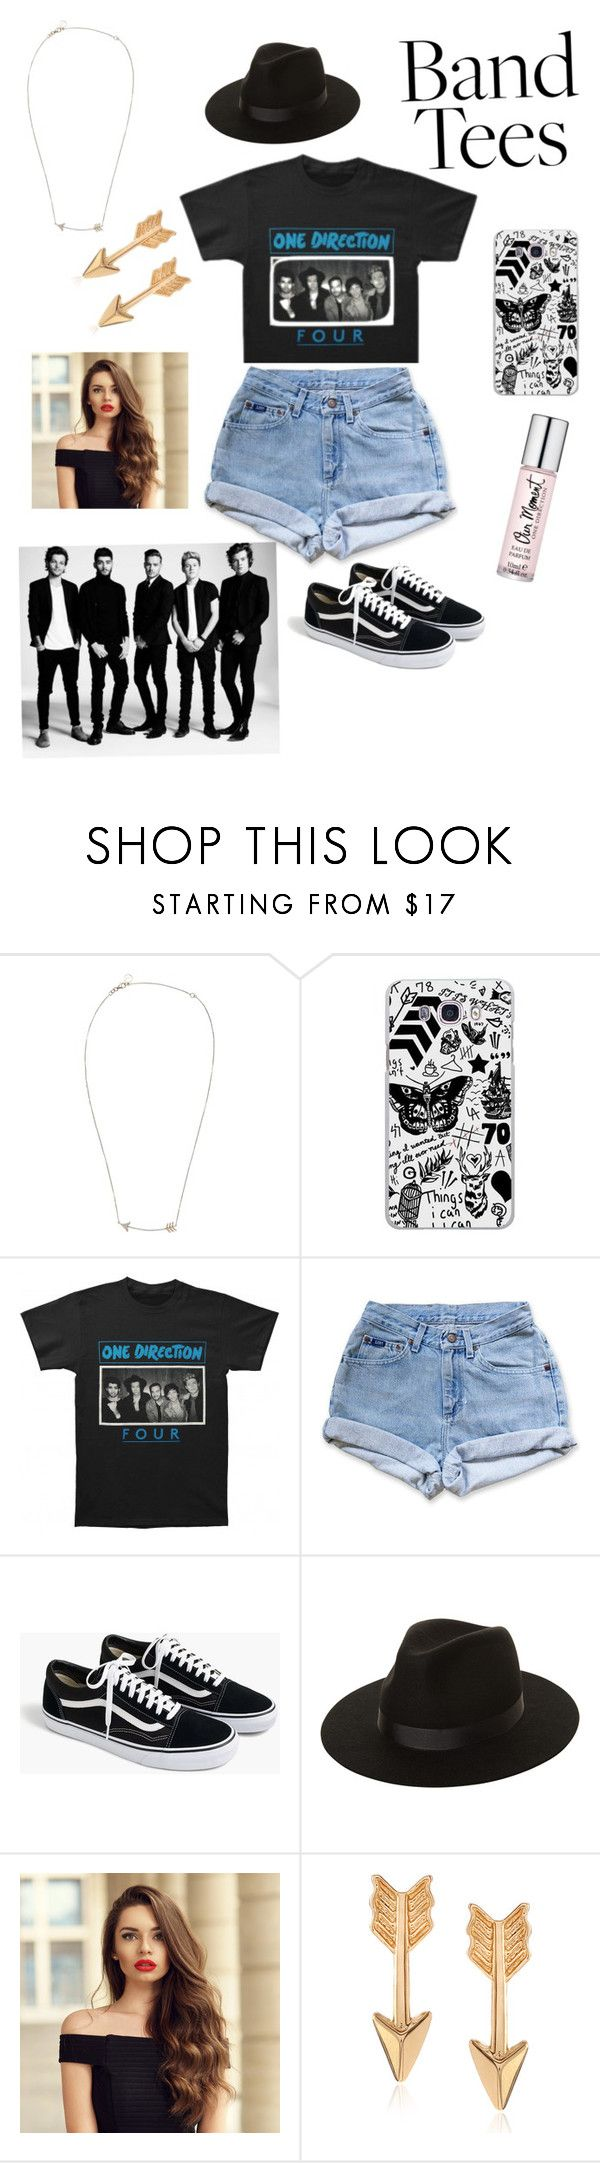 """1D Concert"" by genesis-cartagena ❤ liked on Polyvore featuring Bee Goddess, Samsung, Levi's, J.Crew, Lack of Color and Journee Collection"